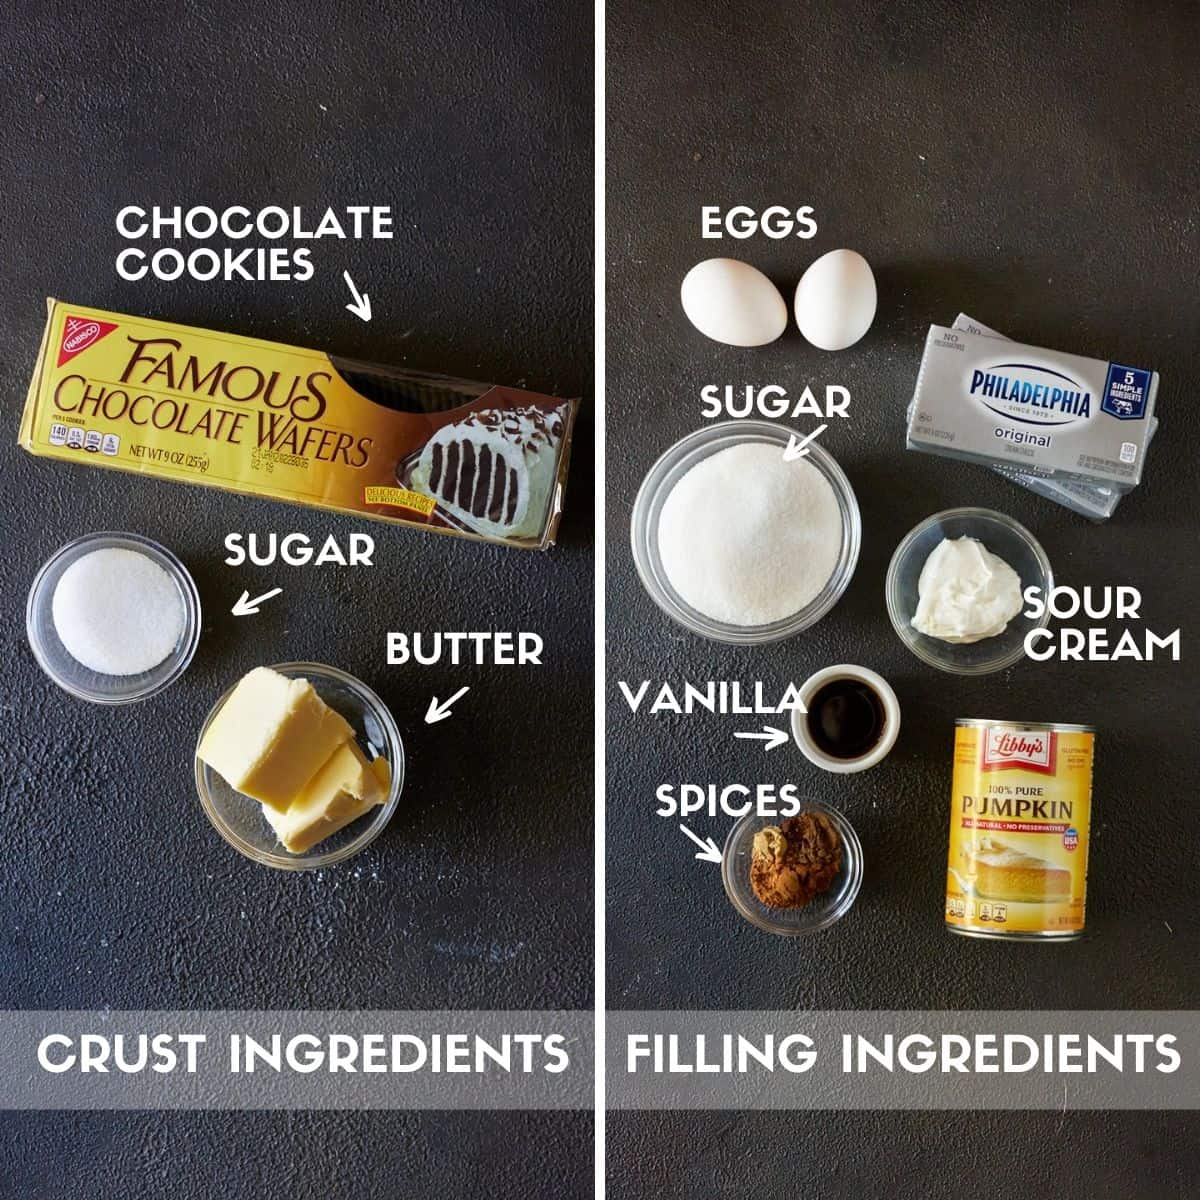 Crust and filling ingredients for cheesecake bars, including chocolate cookies, cream cheese & pumpkin puree.